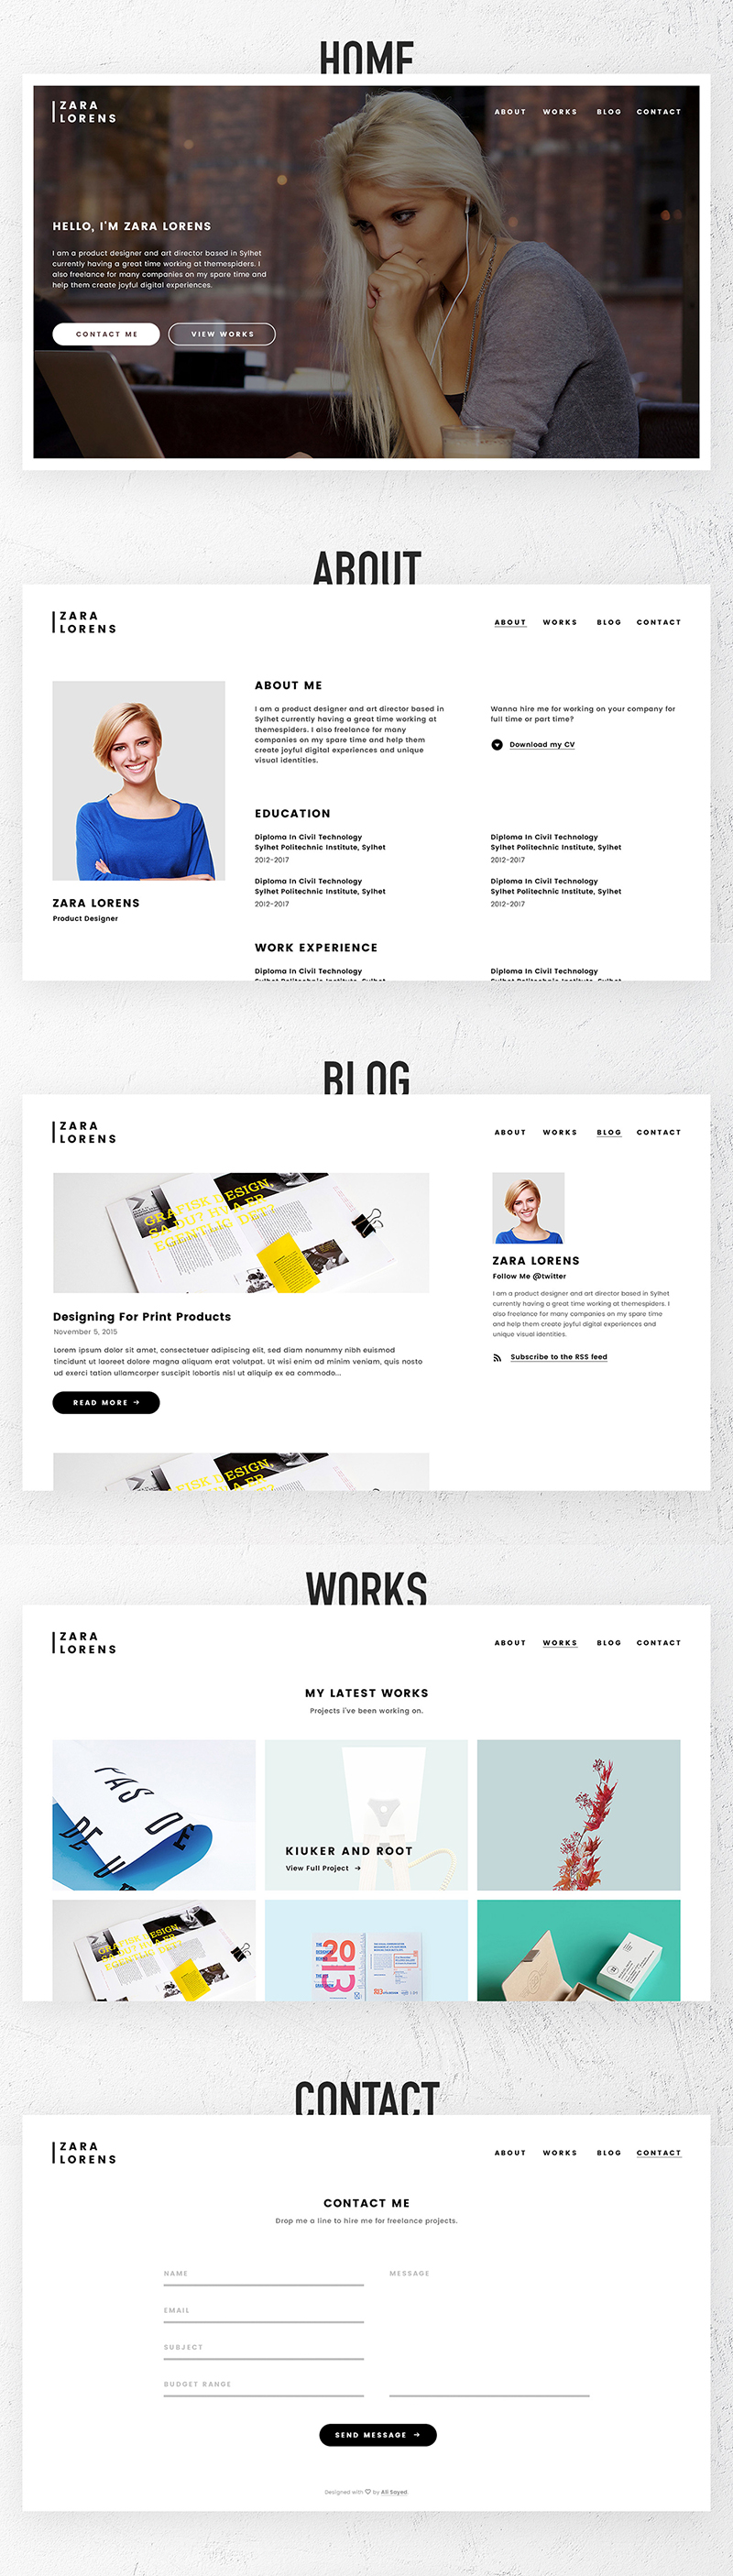 personal portfolio website psd template bypeople a personal portfolio website template that will help you a lot at the moment of introducing your work to the world well differentiated categories like home